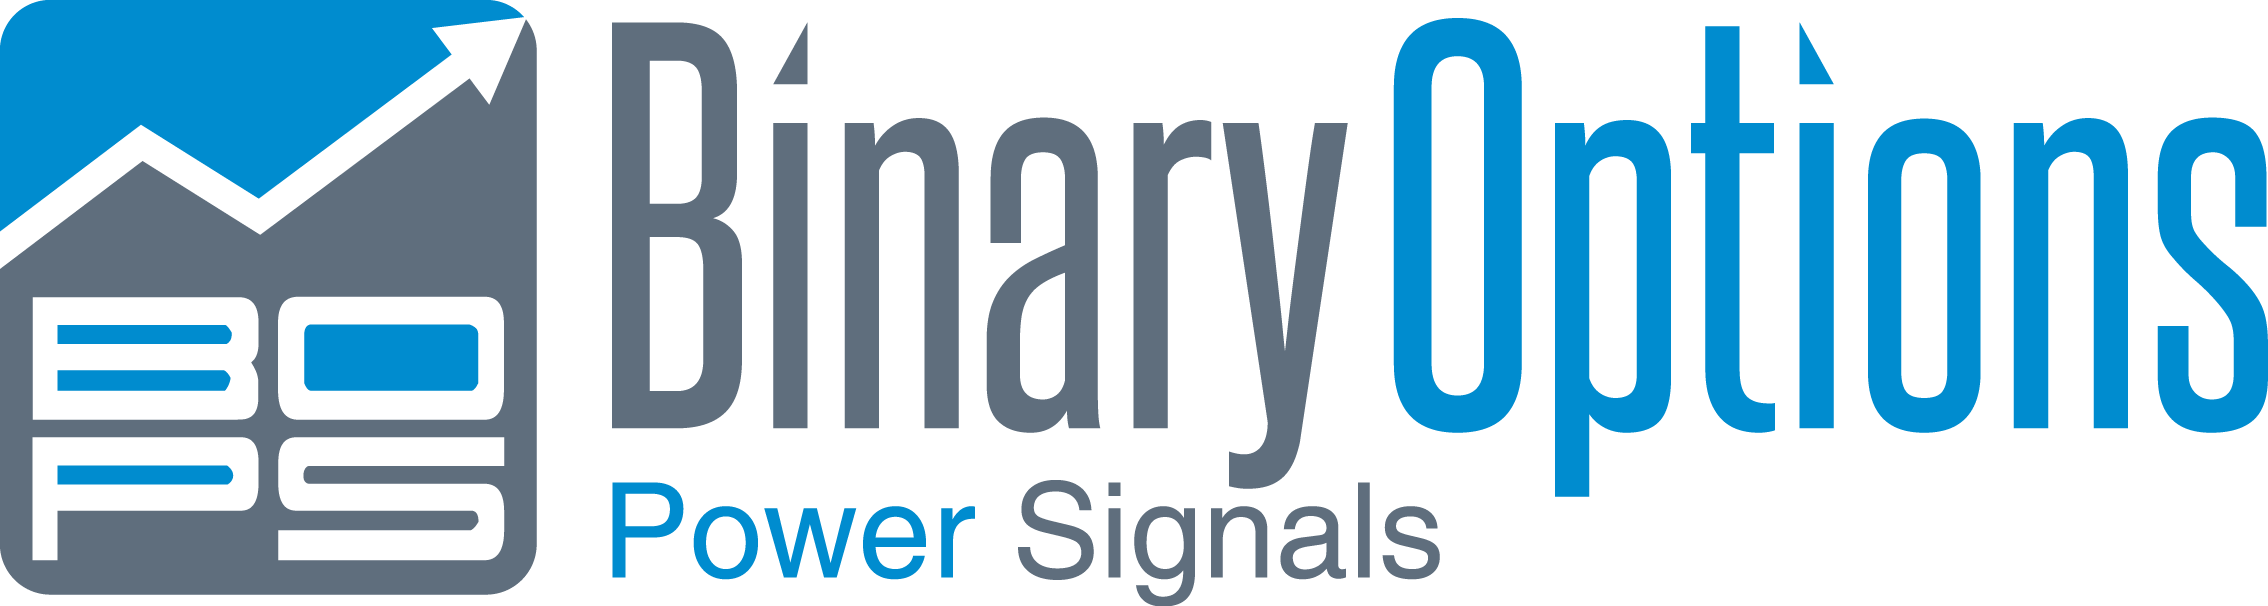 Simple Binary options signals delivered — Binary Options Power Signals